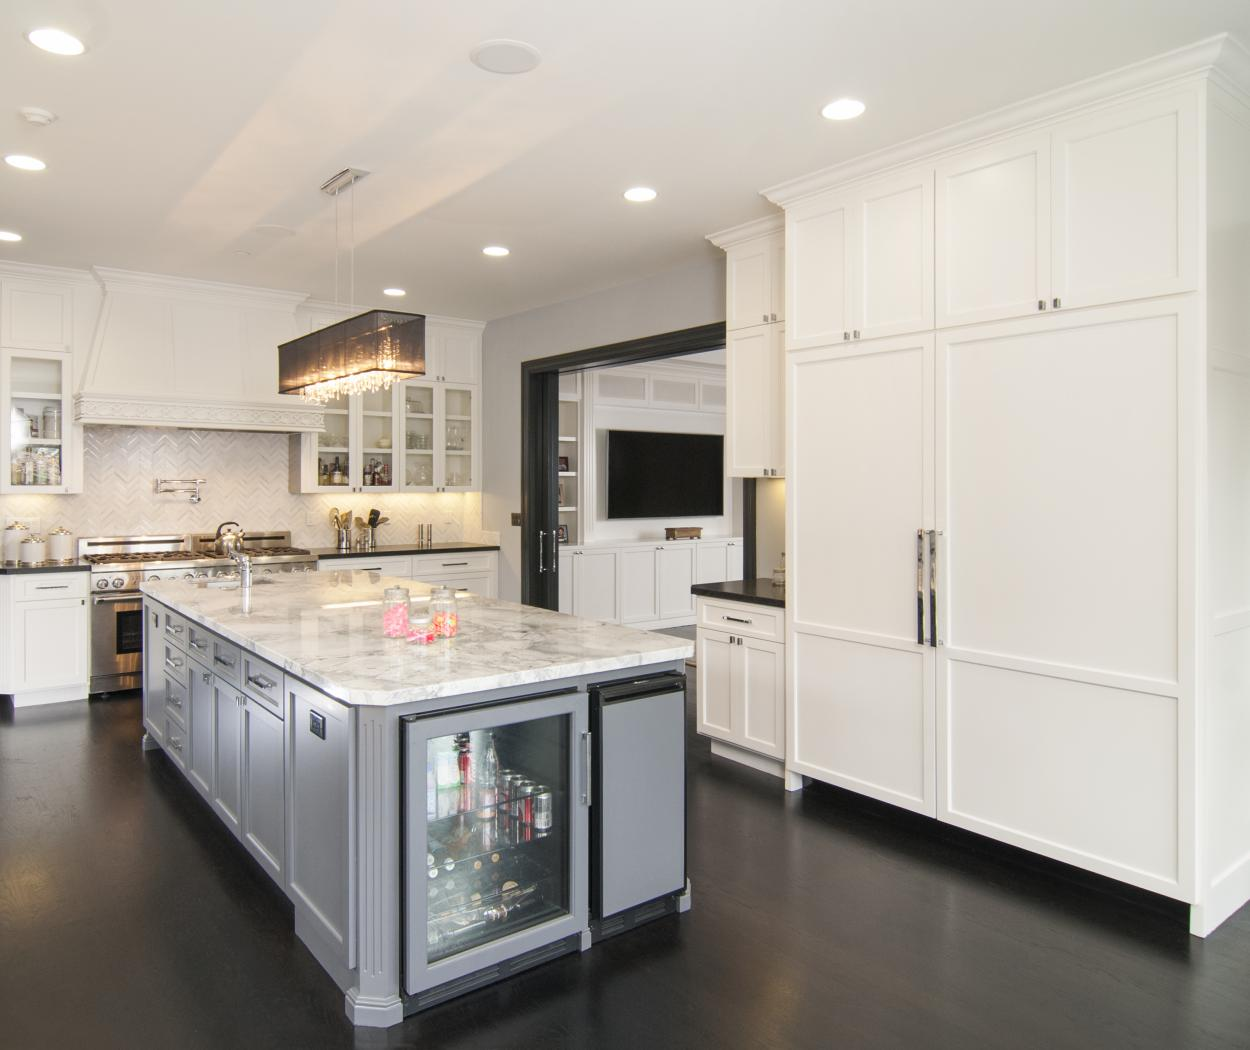 Transitional White Kitchen with a Beautiful Grey Island, Marble Counter Tops, Glass Doors and U-Line Appliances